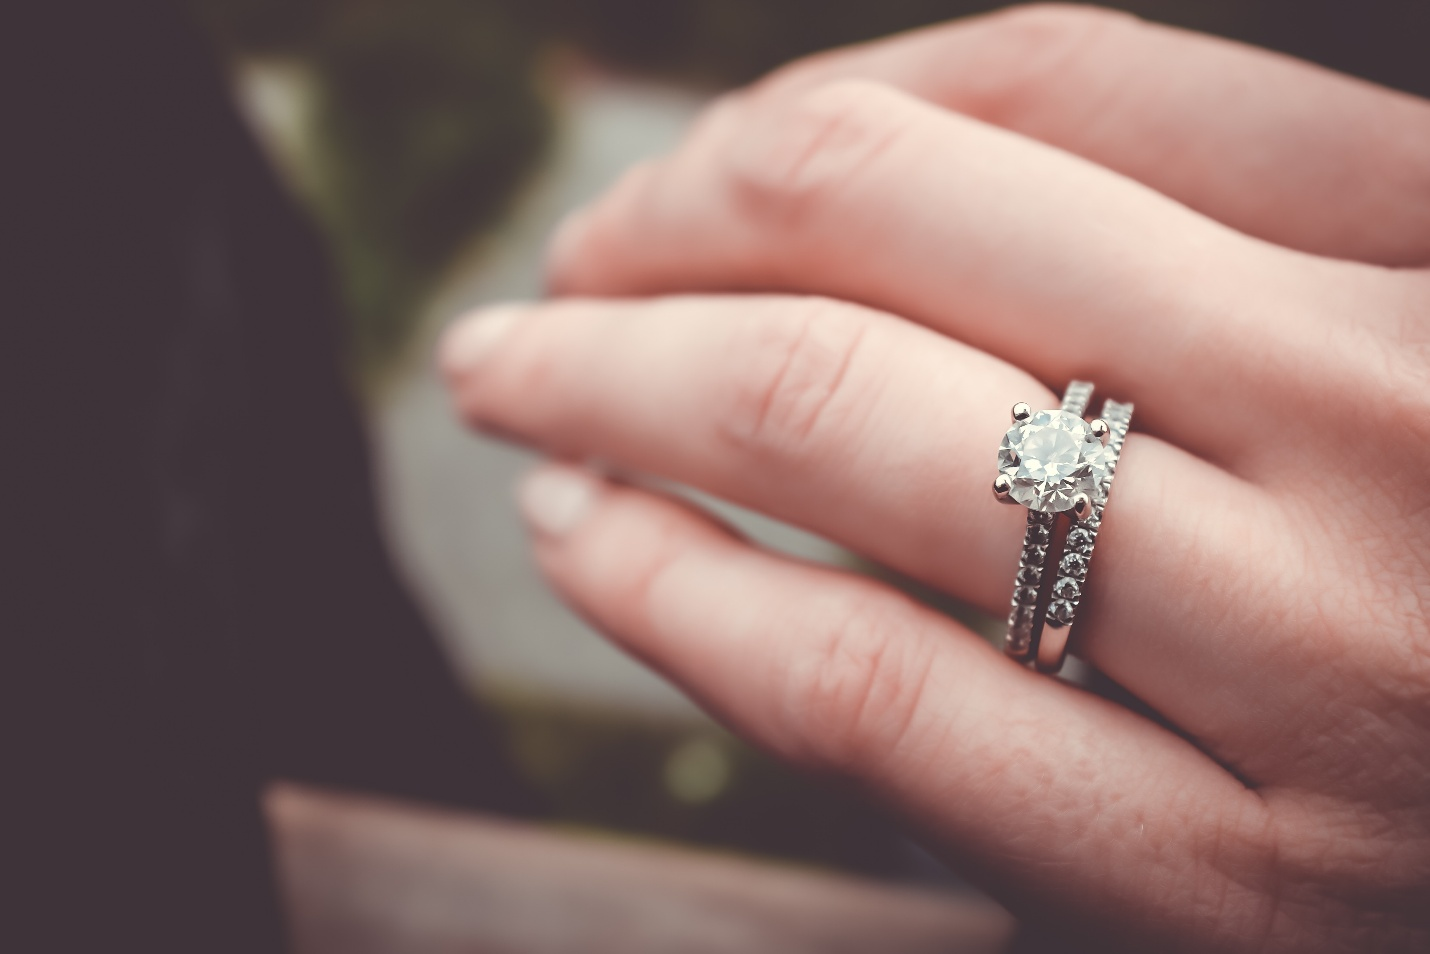 A Definitive Guide on How to Choose the Perfect Engagement Ring